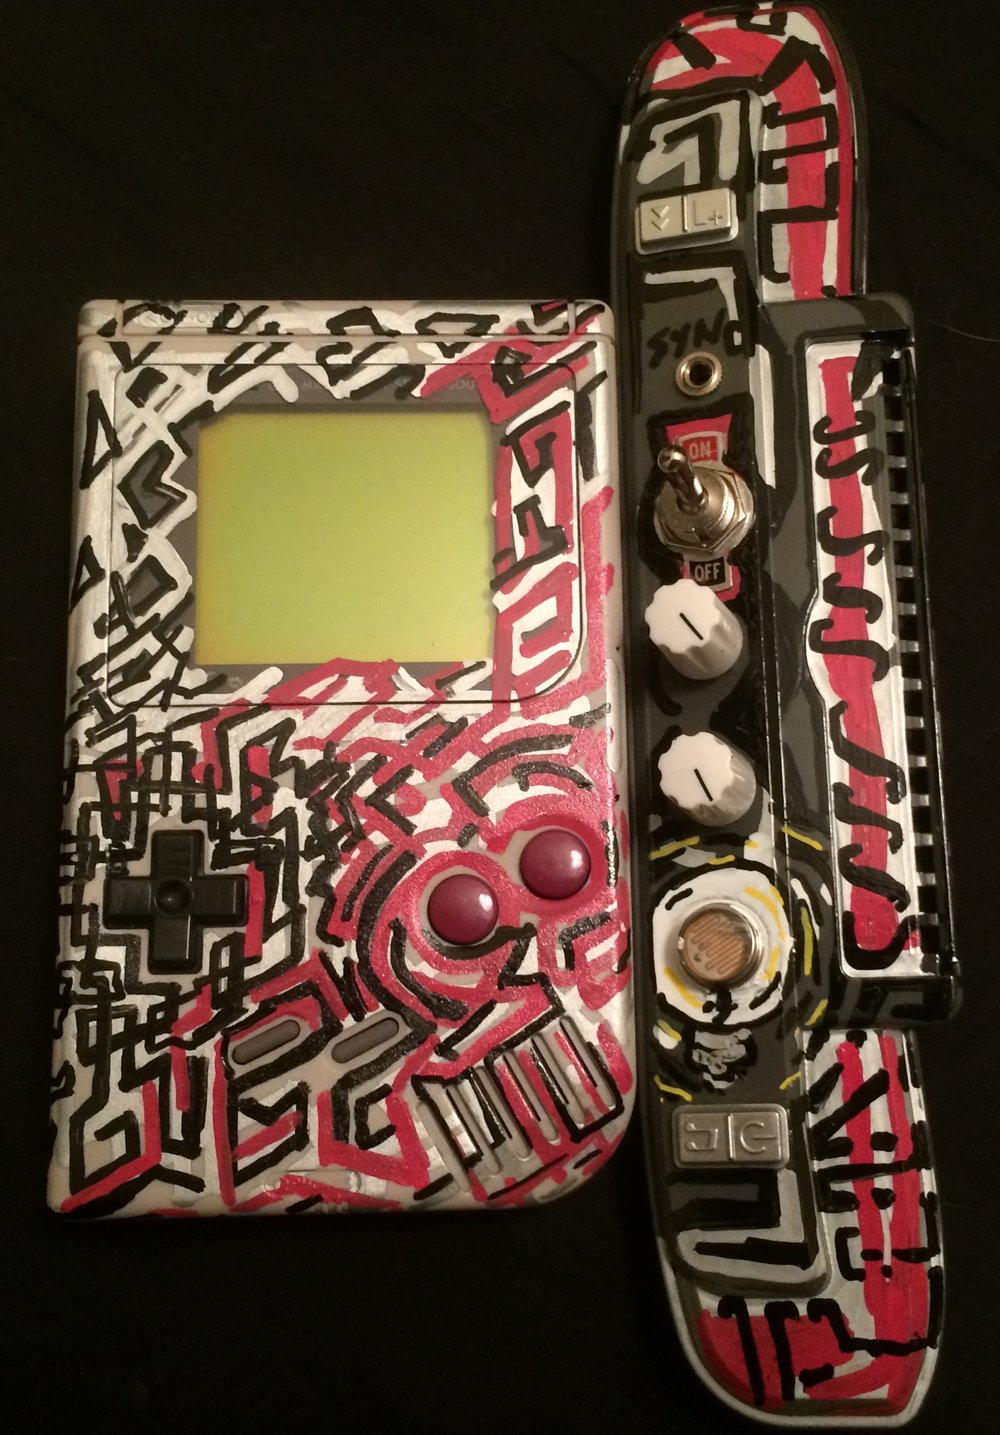 Gameboy With Custom Control Panel